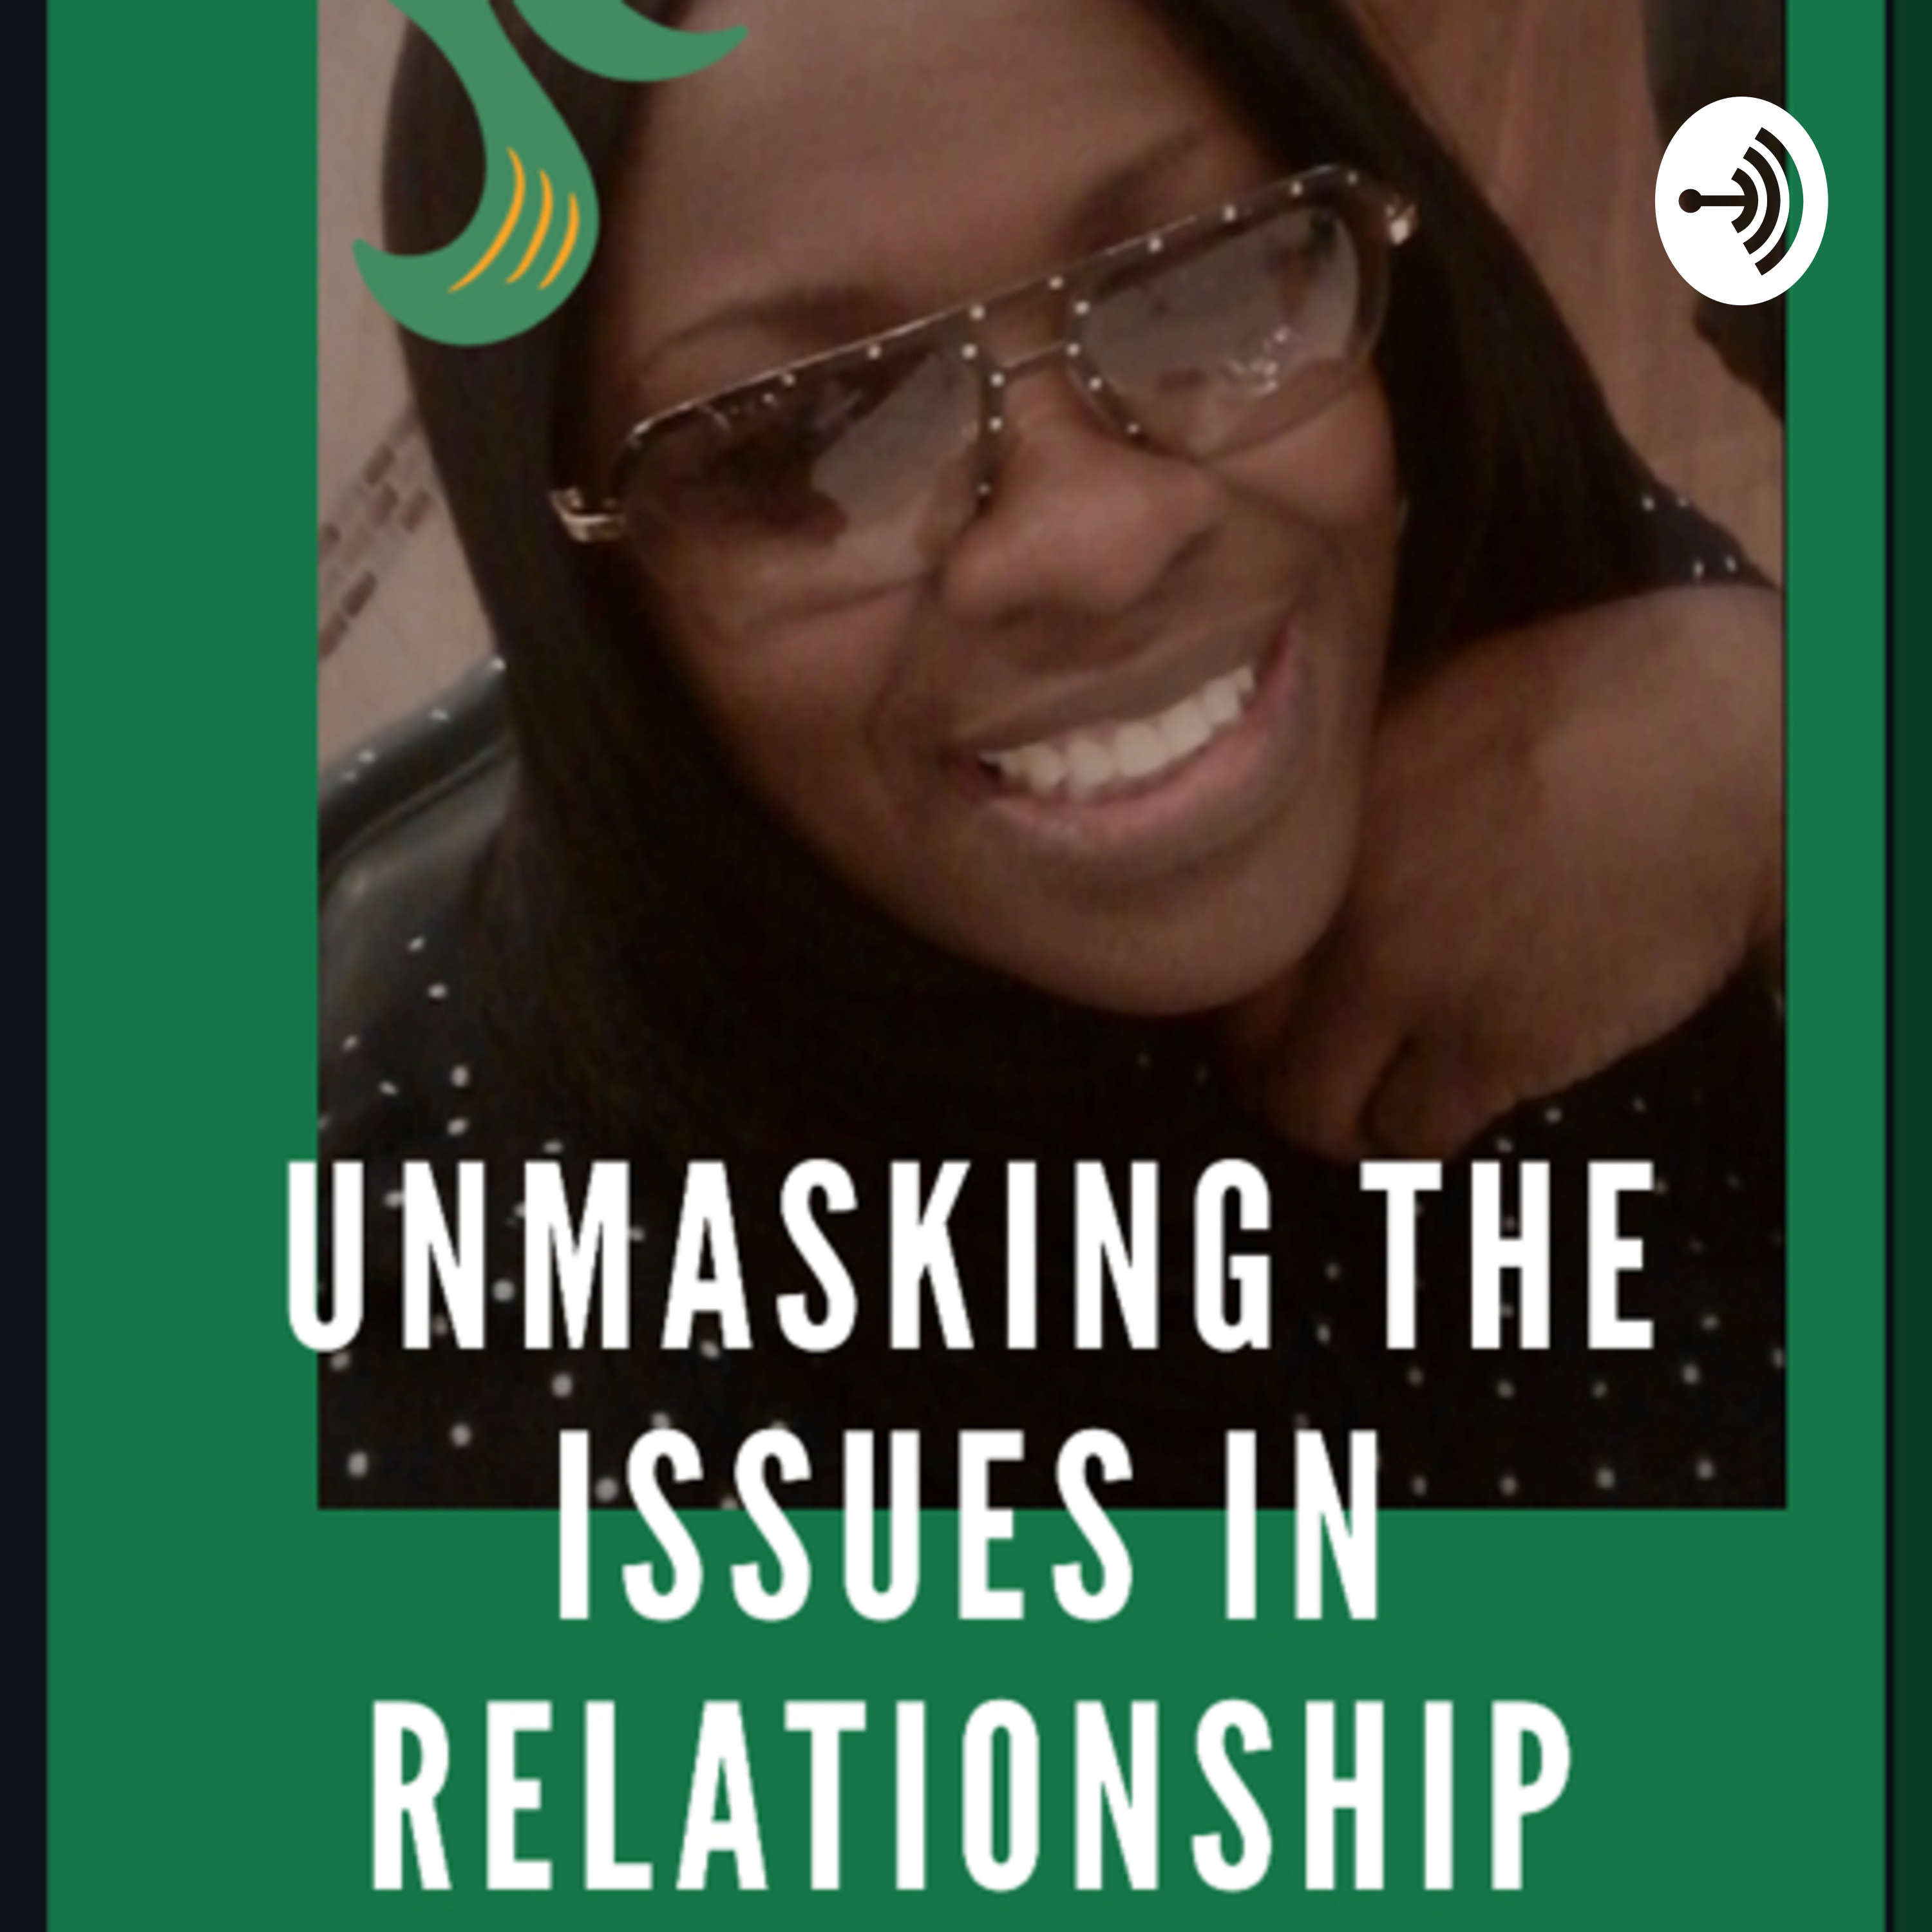 Unmasking issues in a relationship